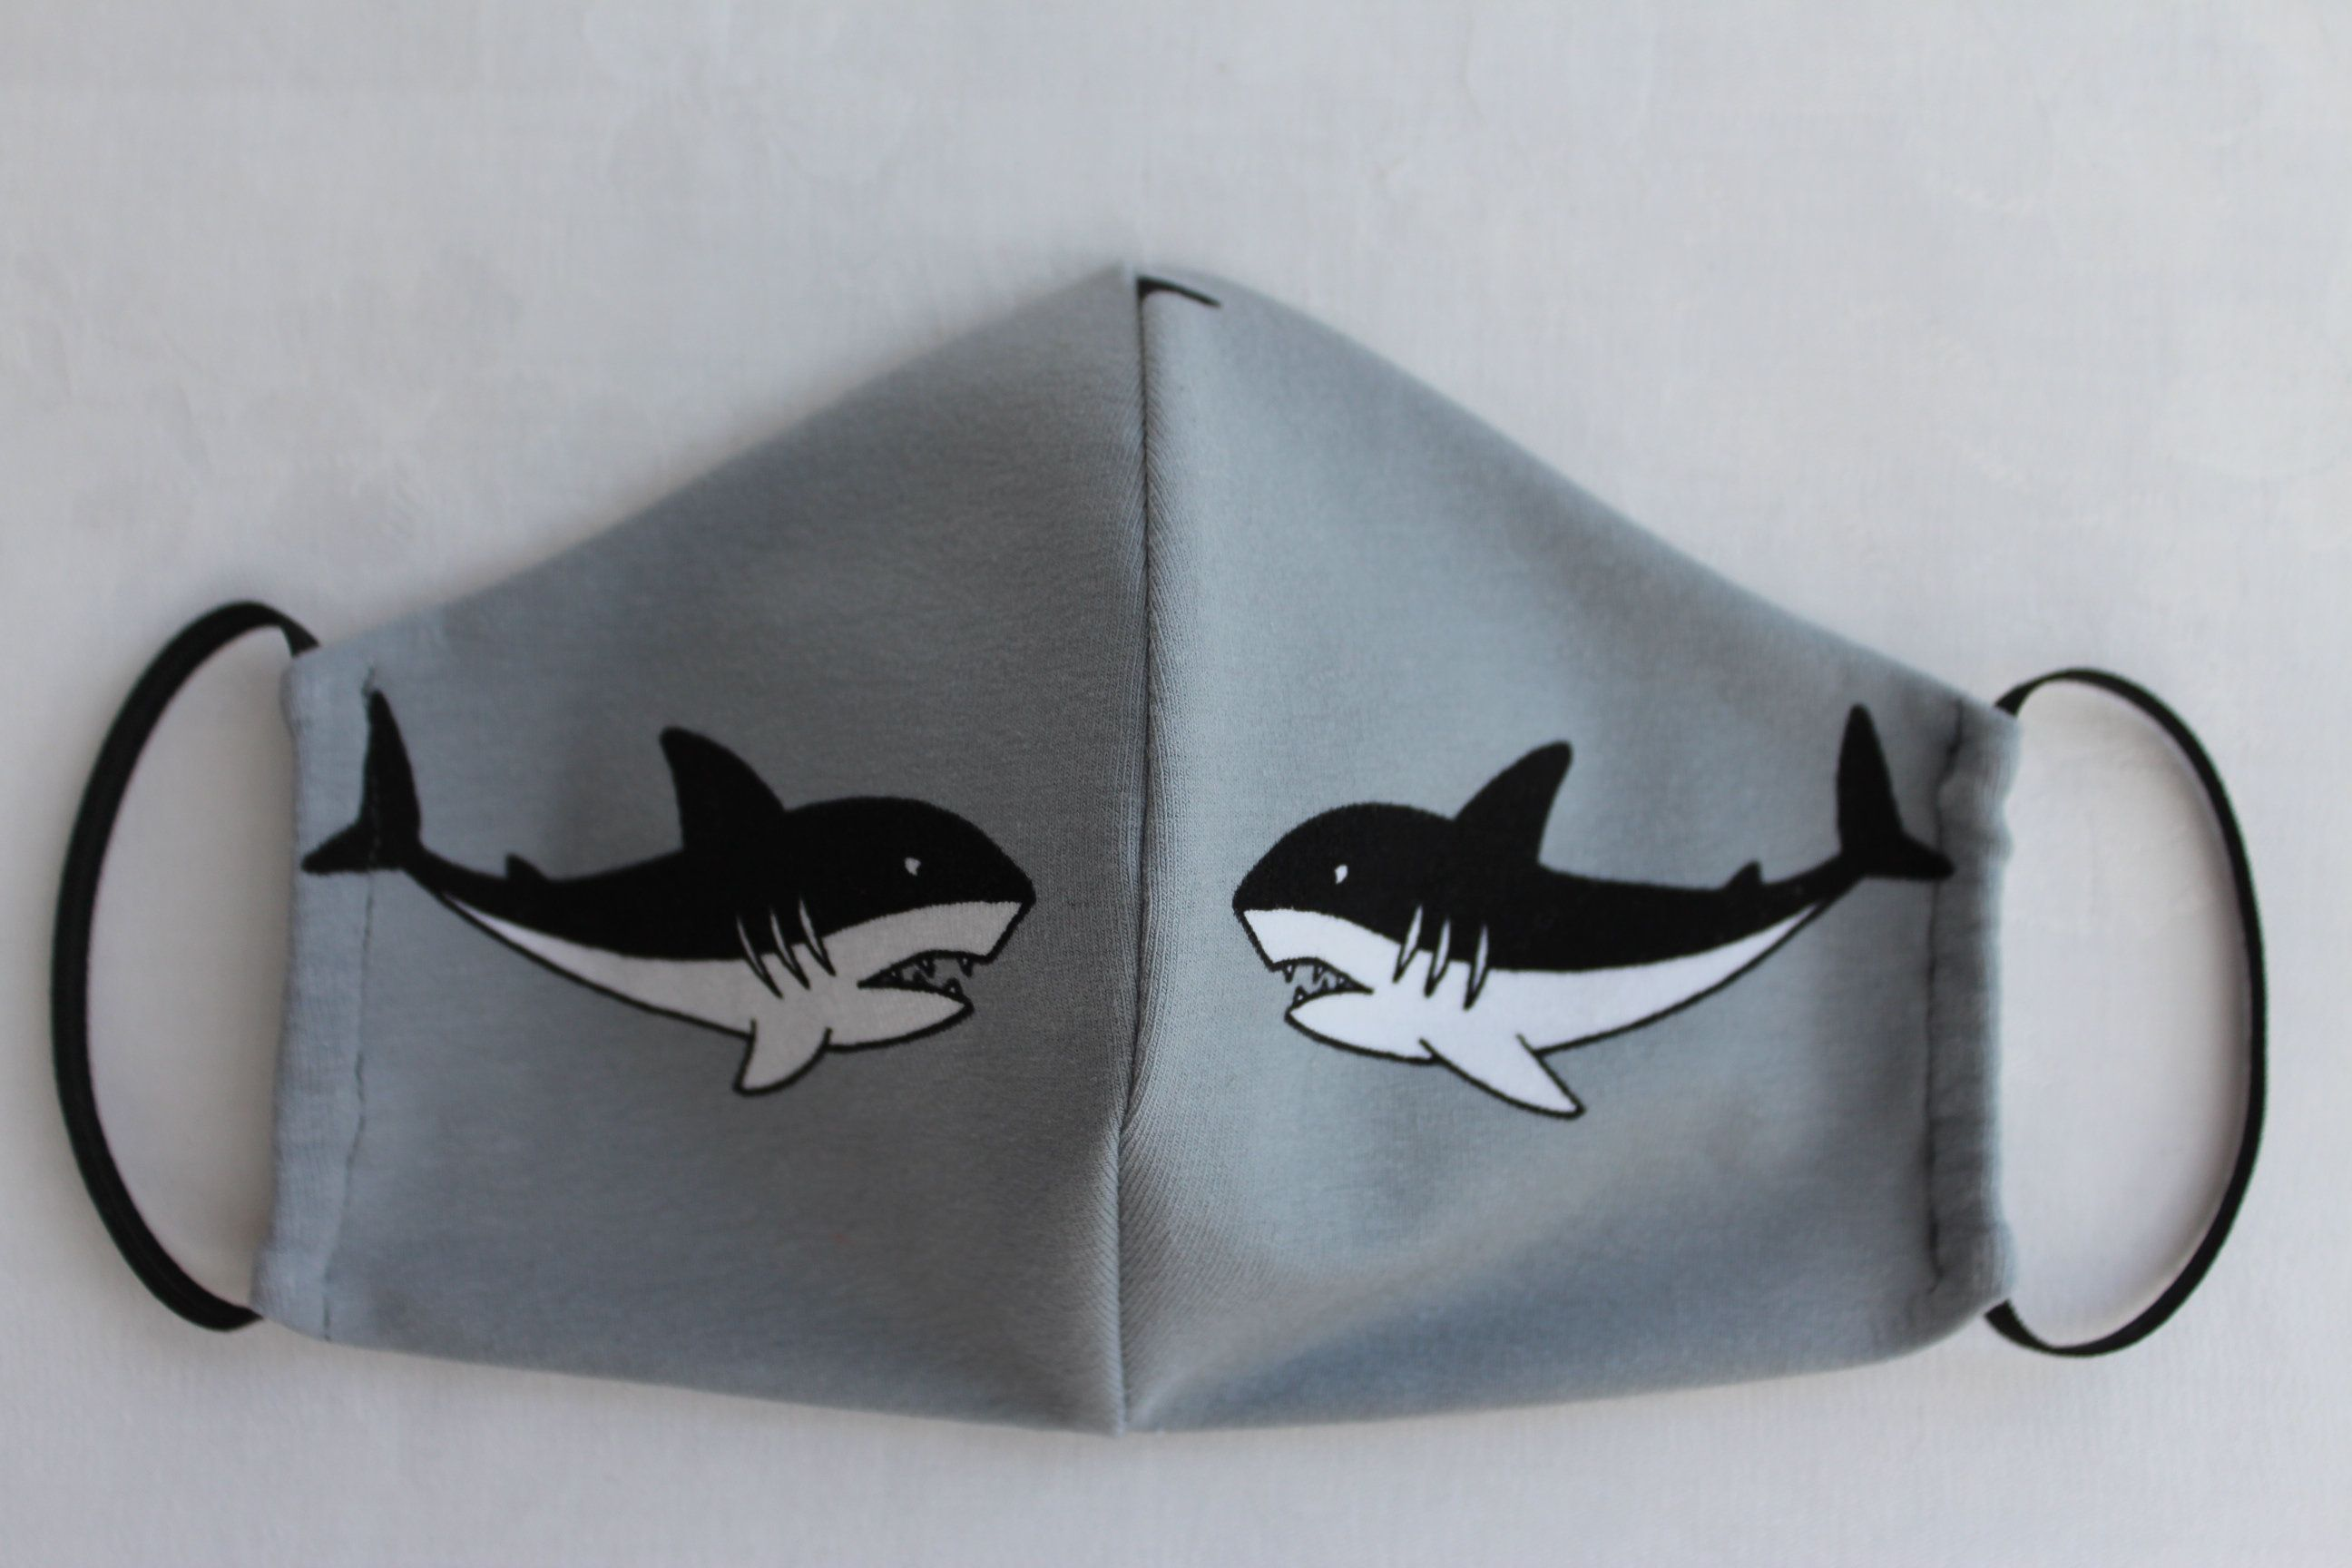 Makeshift Mask Mouthguard Gr S For Kids Student Cotton Jersey Grey Black White Shark Motif Face Mask Nose Cover In 2020 Handmade Pattern Rubber Bands